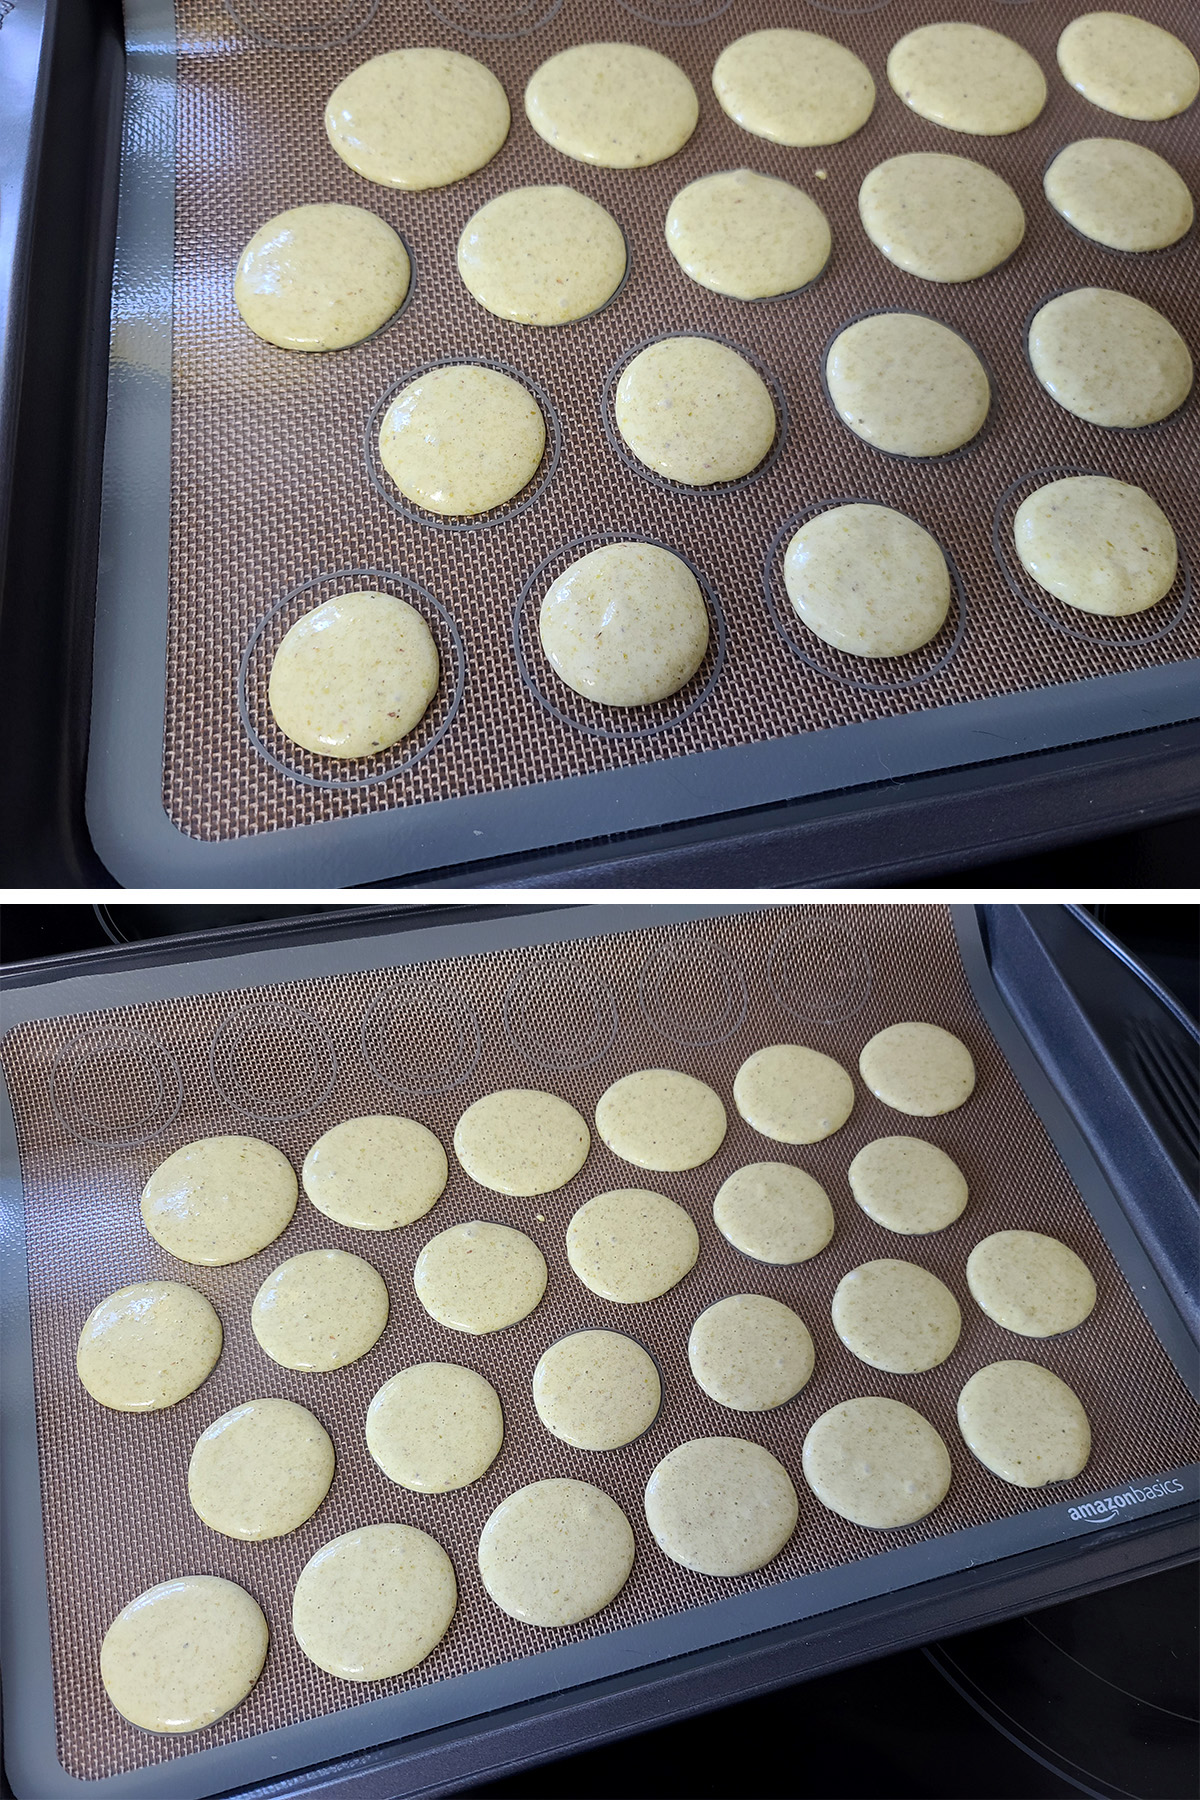 macaron batter that has been piped out onto the silicone baking sheets.